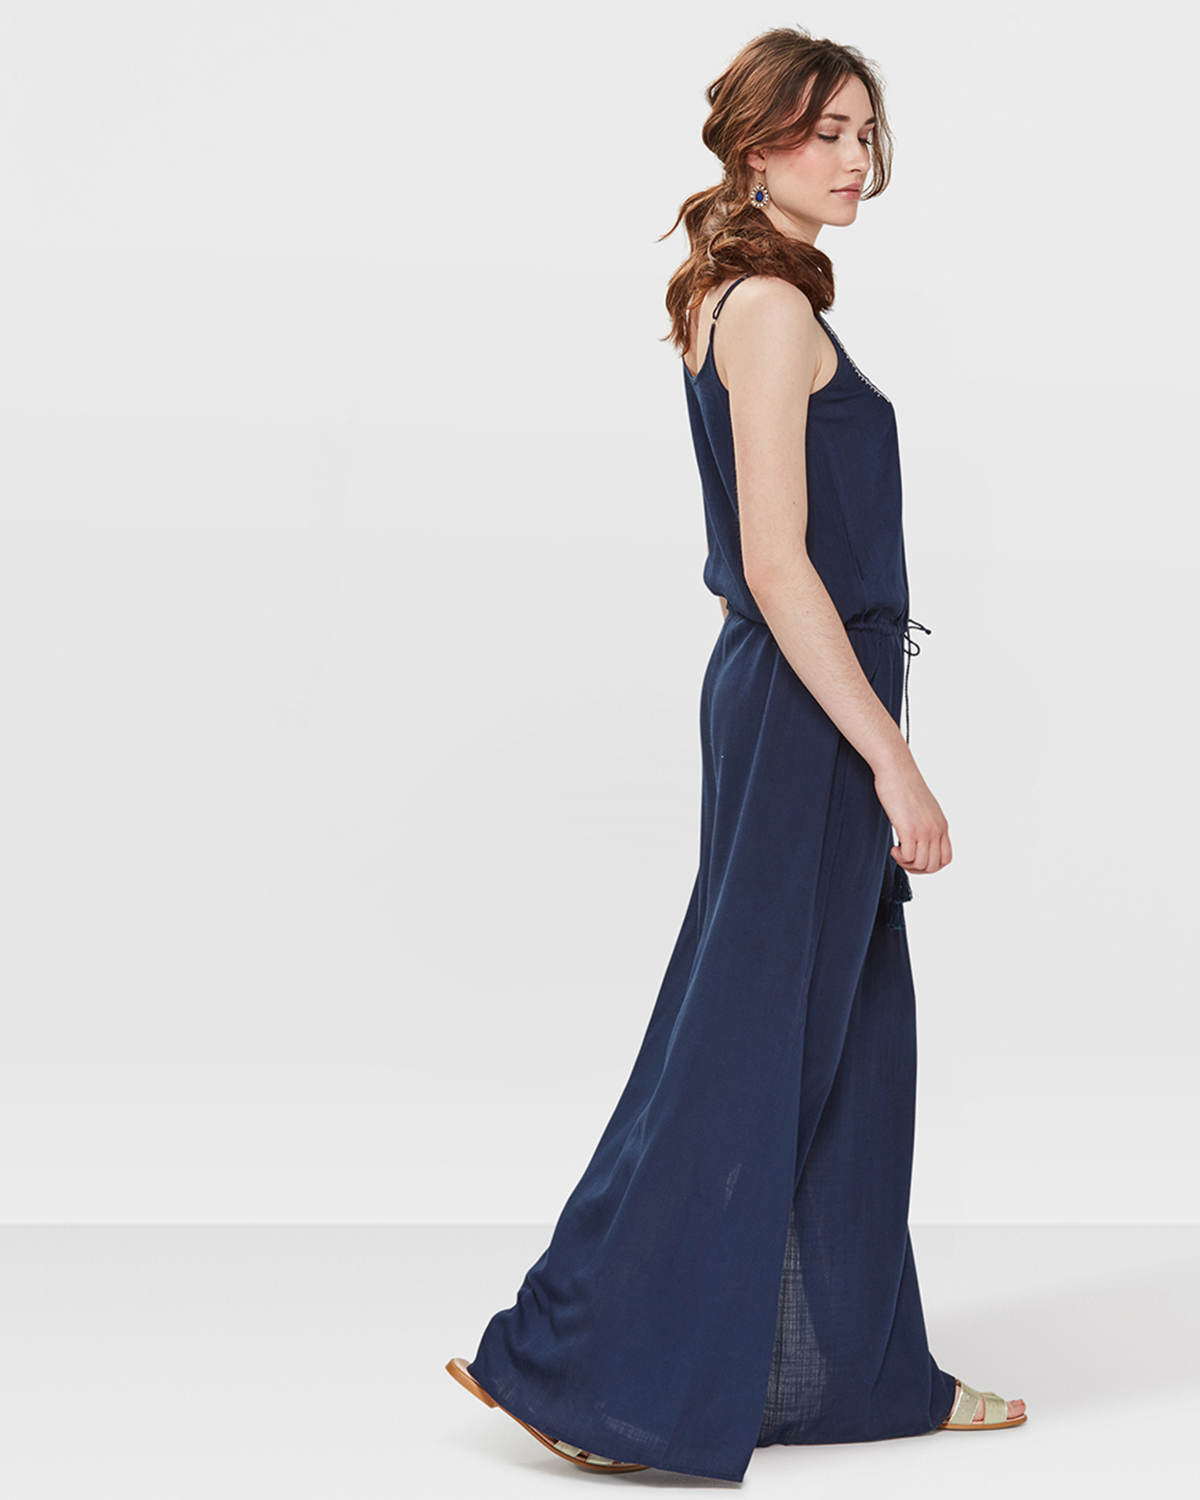 Dames Embroided Maxi Fashion We Jurk79224987 bgf6y7